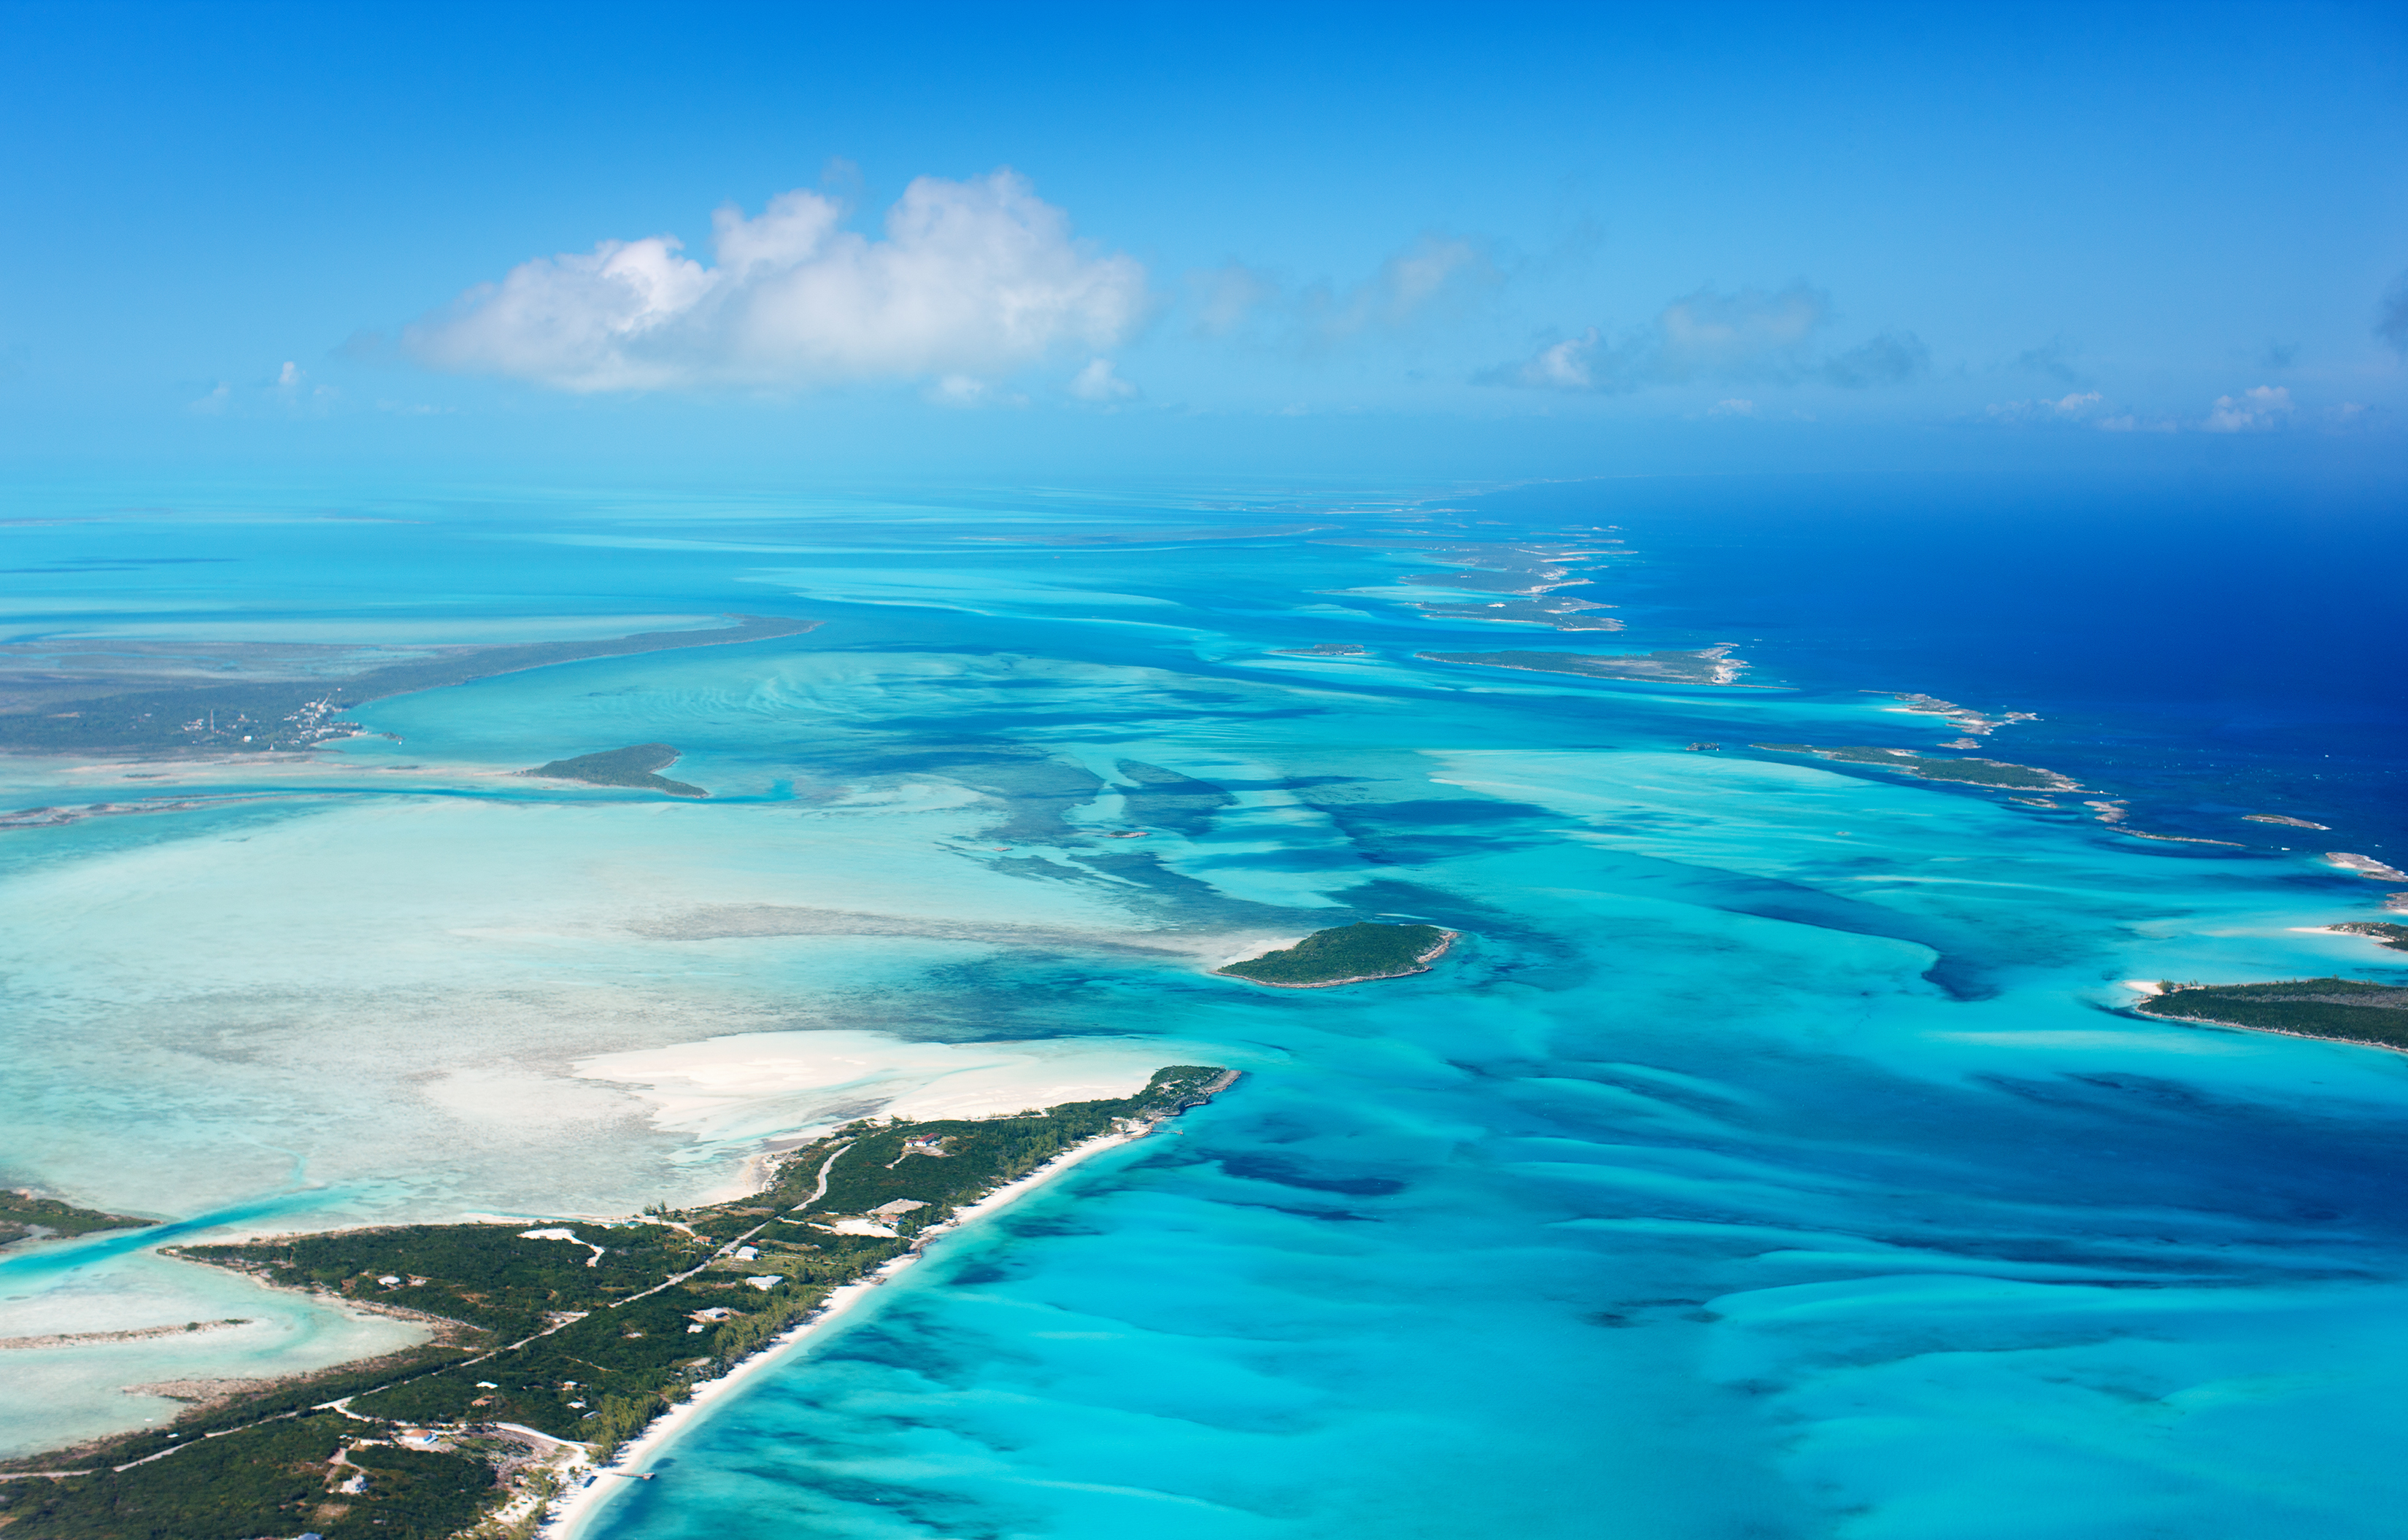 The Bahamas is show from an aerial view. Shutterstock image via OrangeBlue Studio